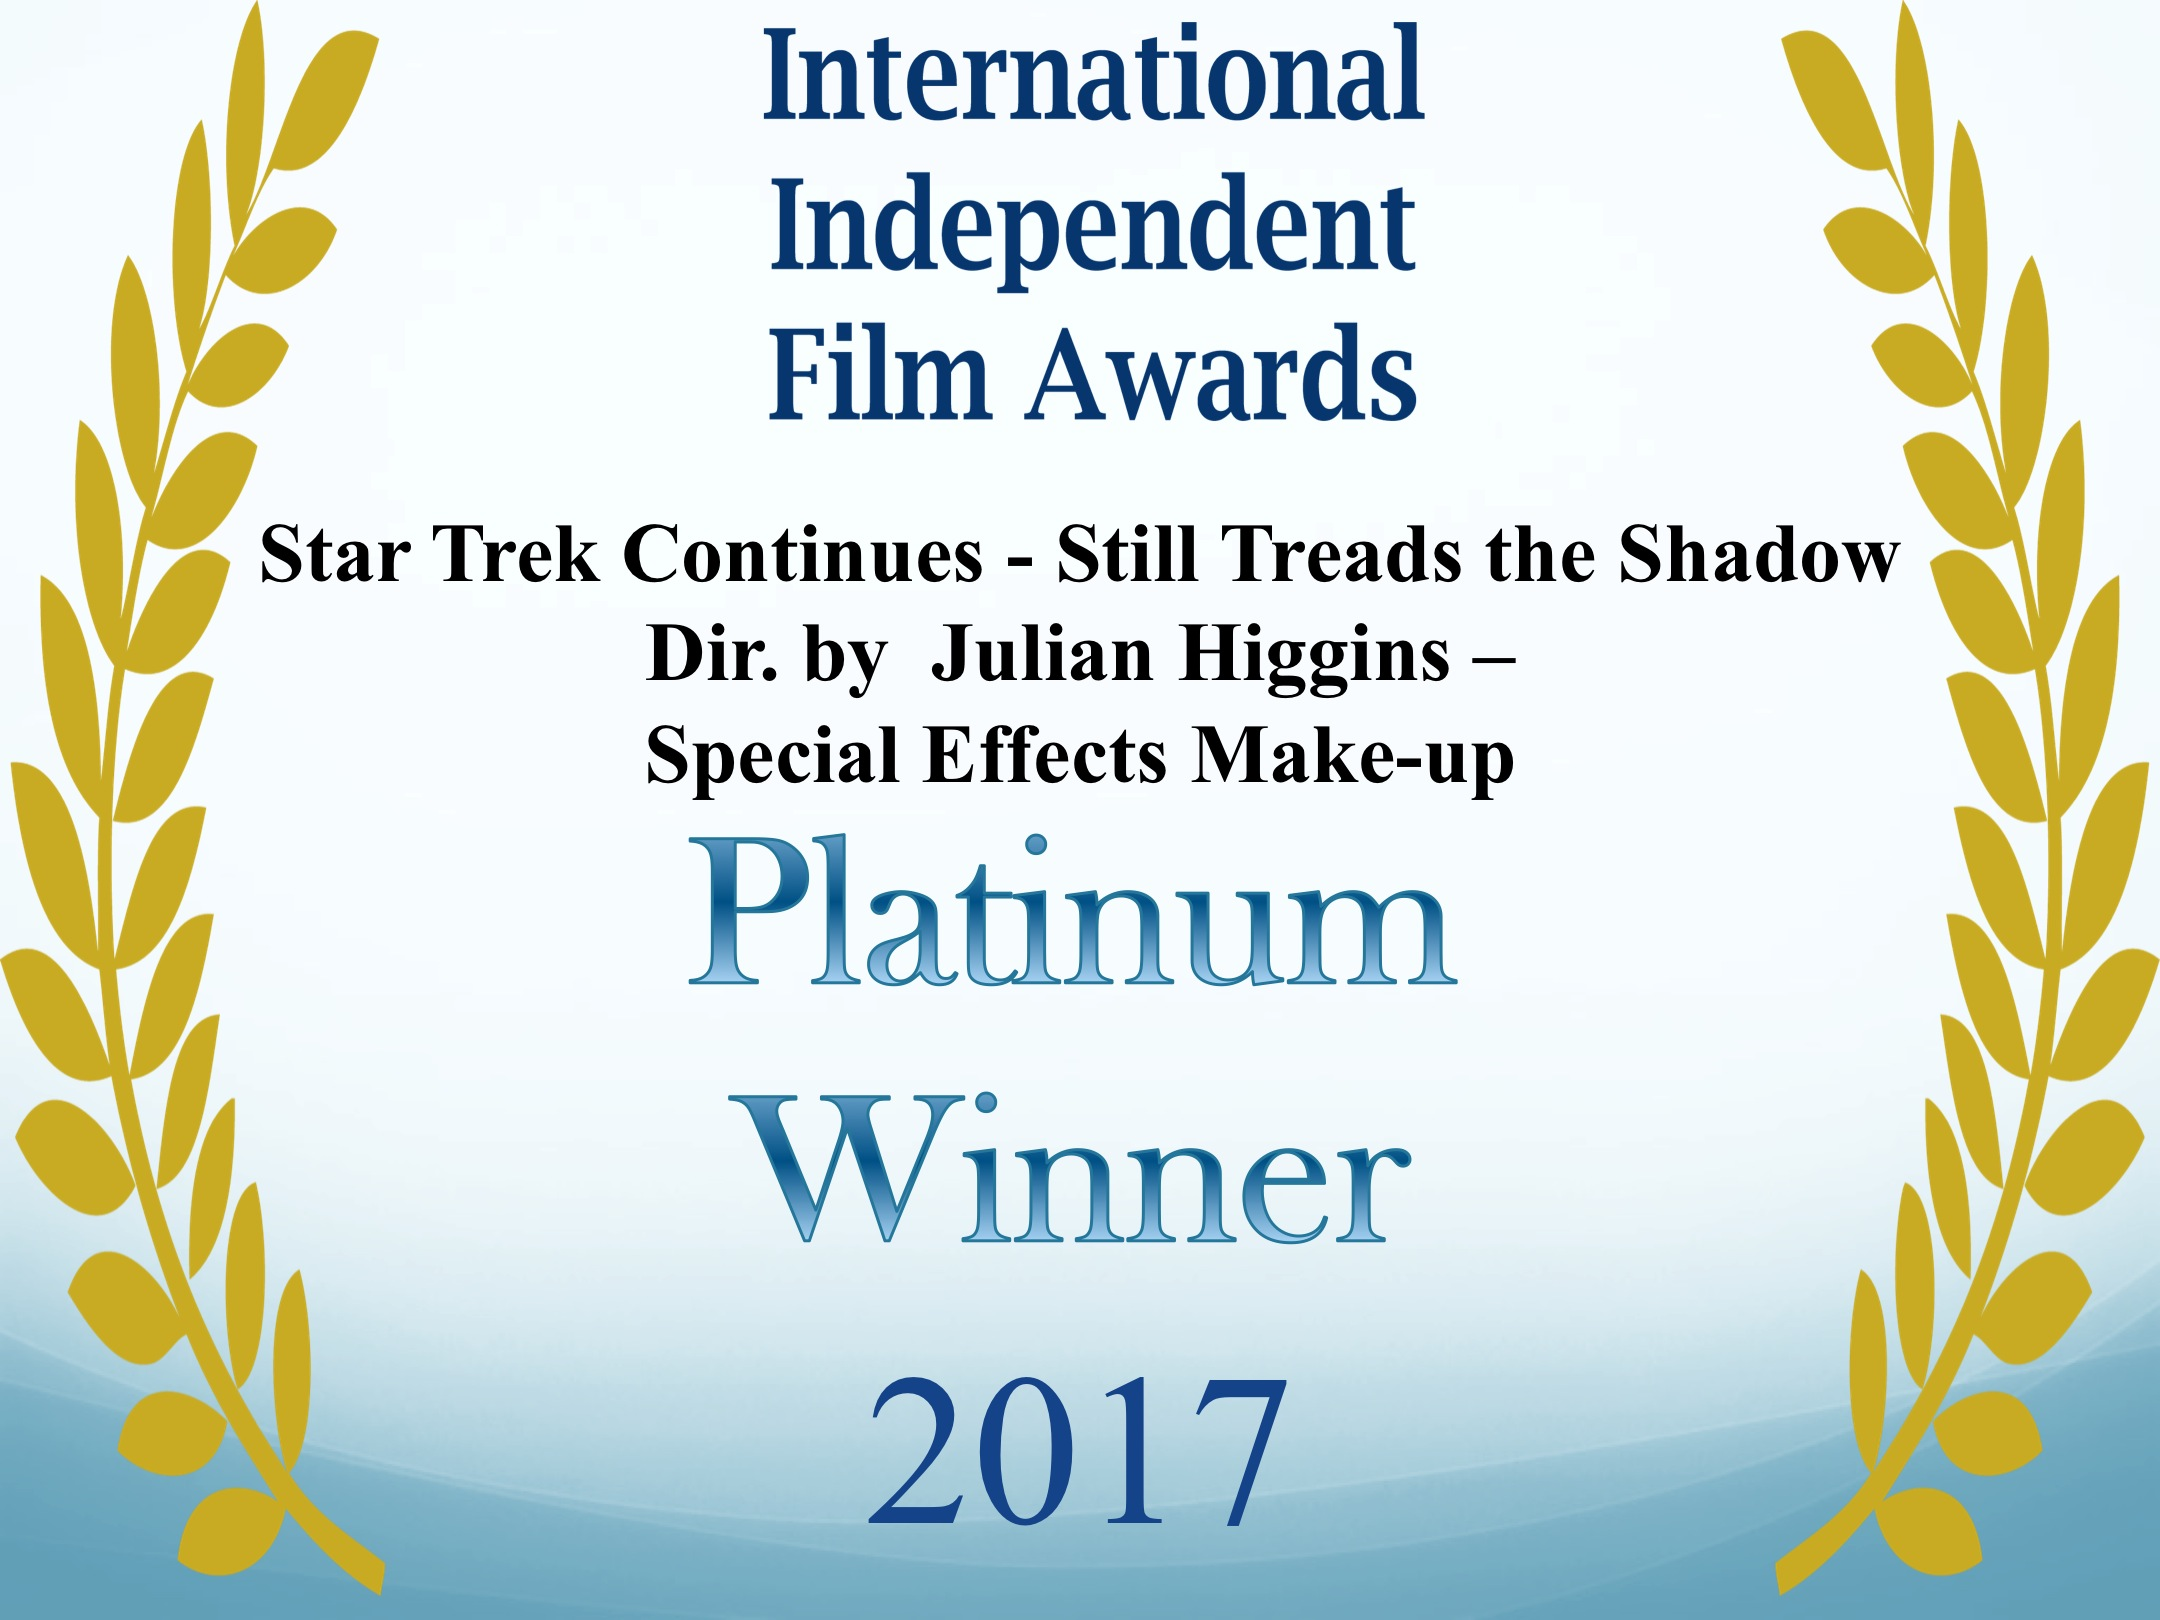 International Independent Film Award for SFX Makeup 2017 STC Still Treads the Shadow